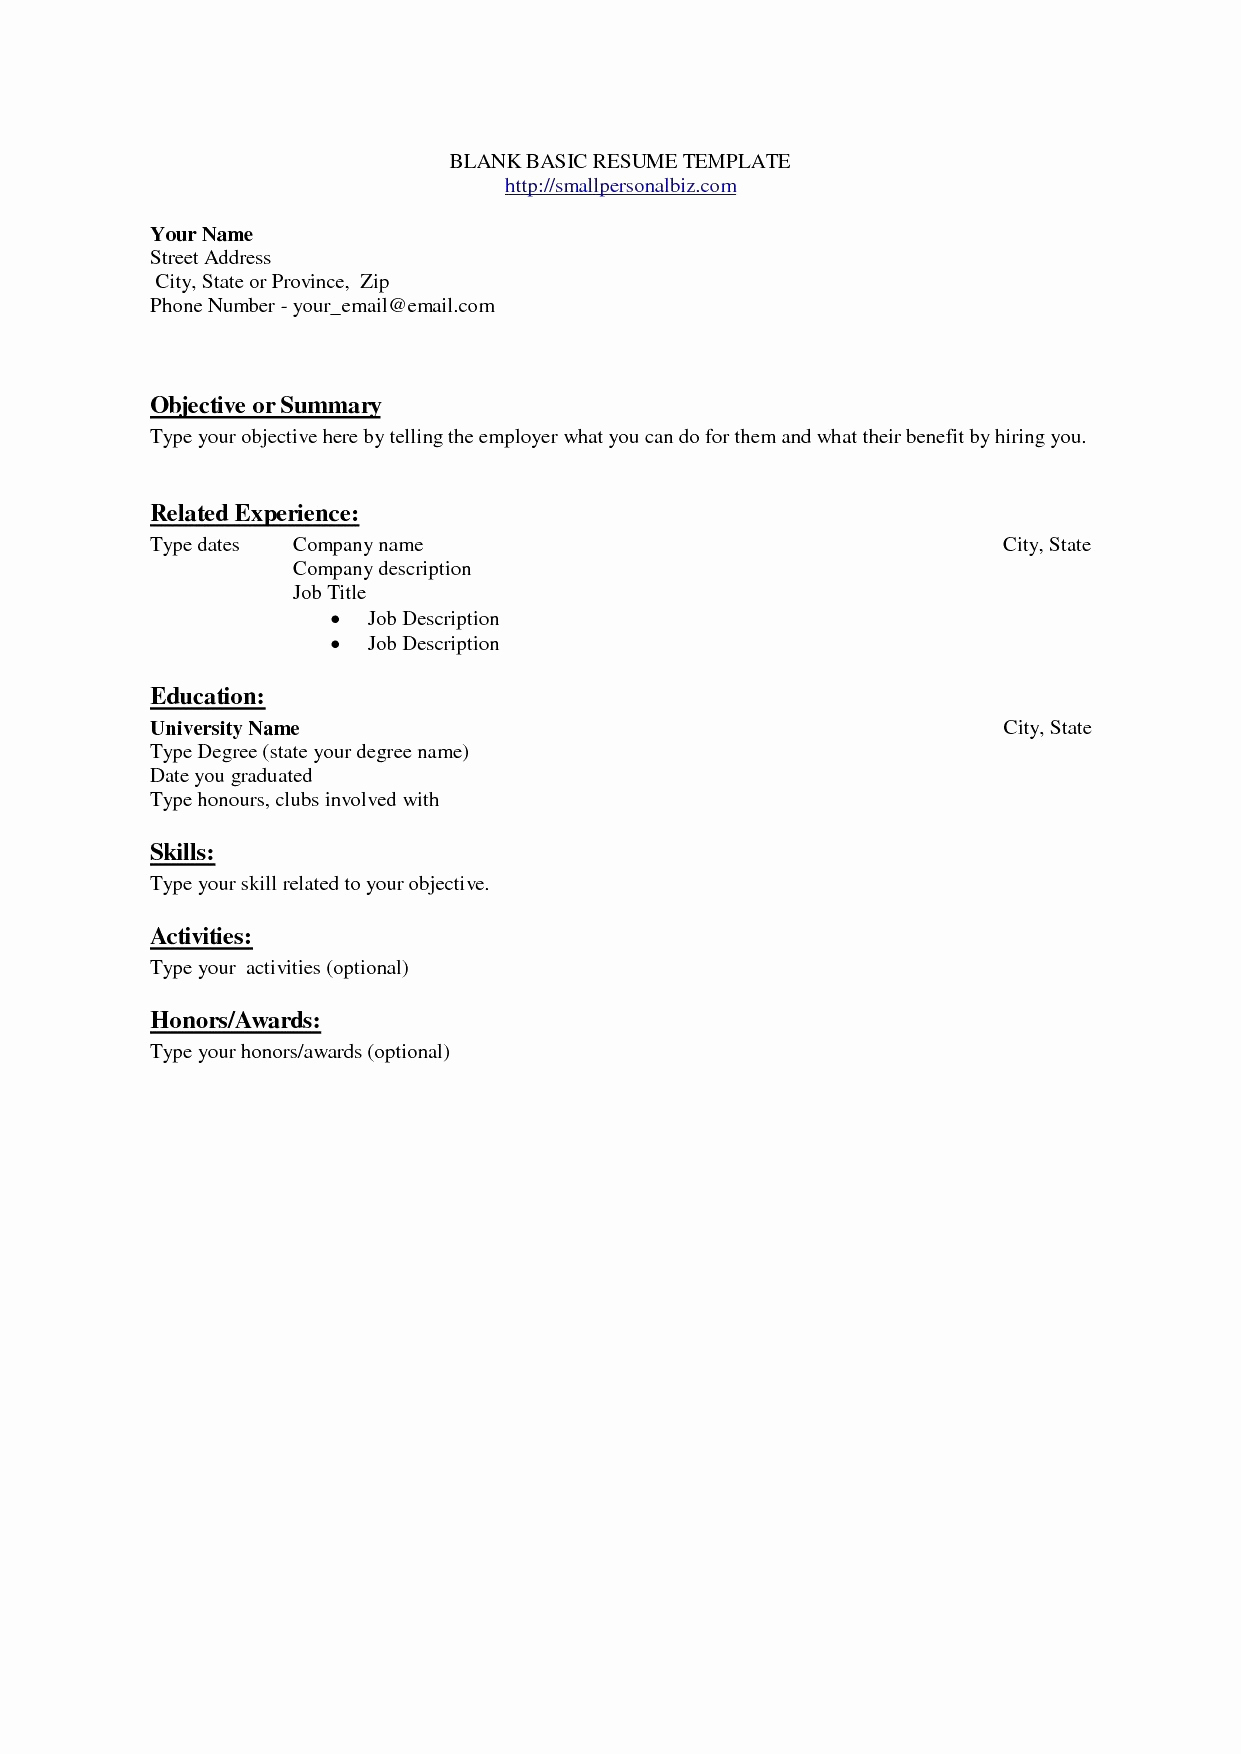 Post My Resume On Craigslist - Post Resume Craigslist New Reference Search Resumes Craigslist